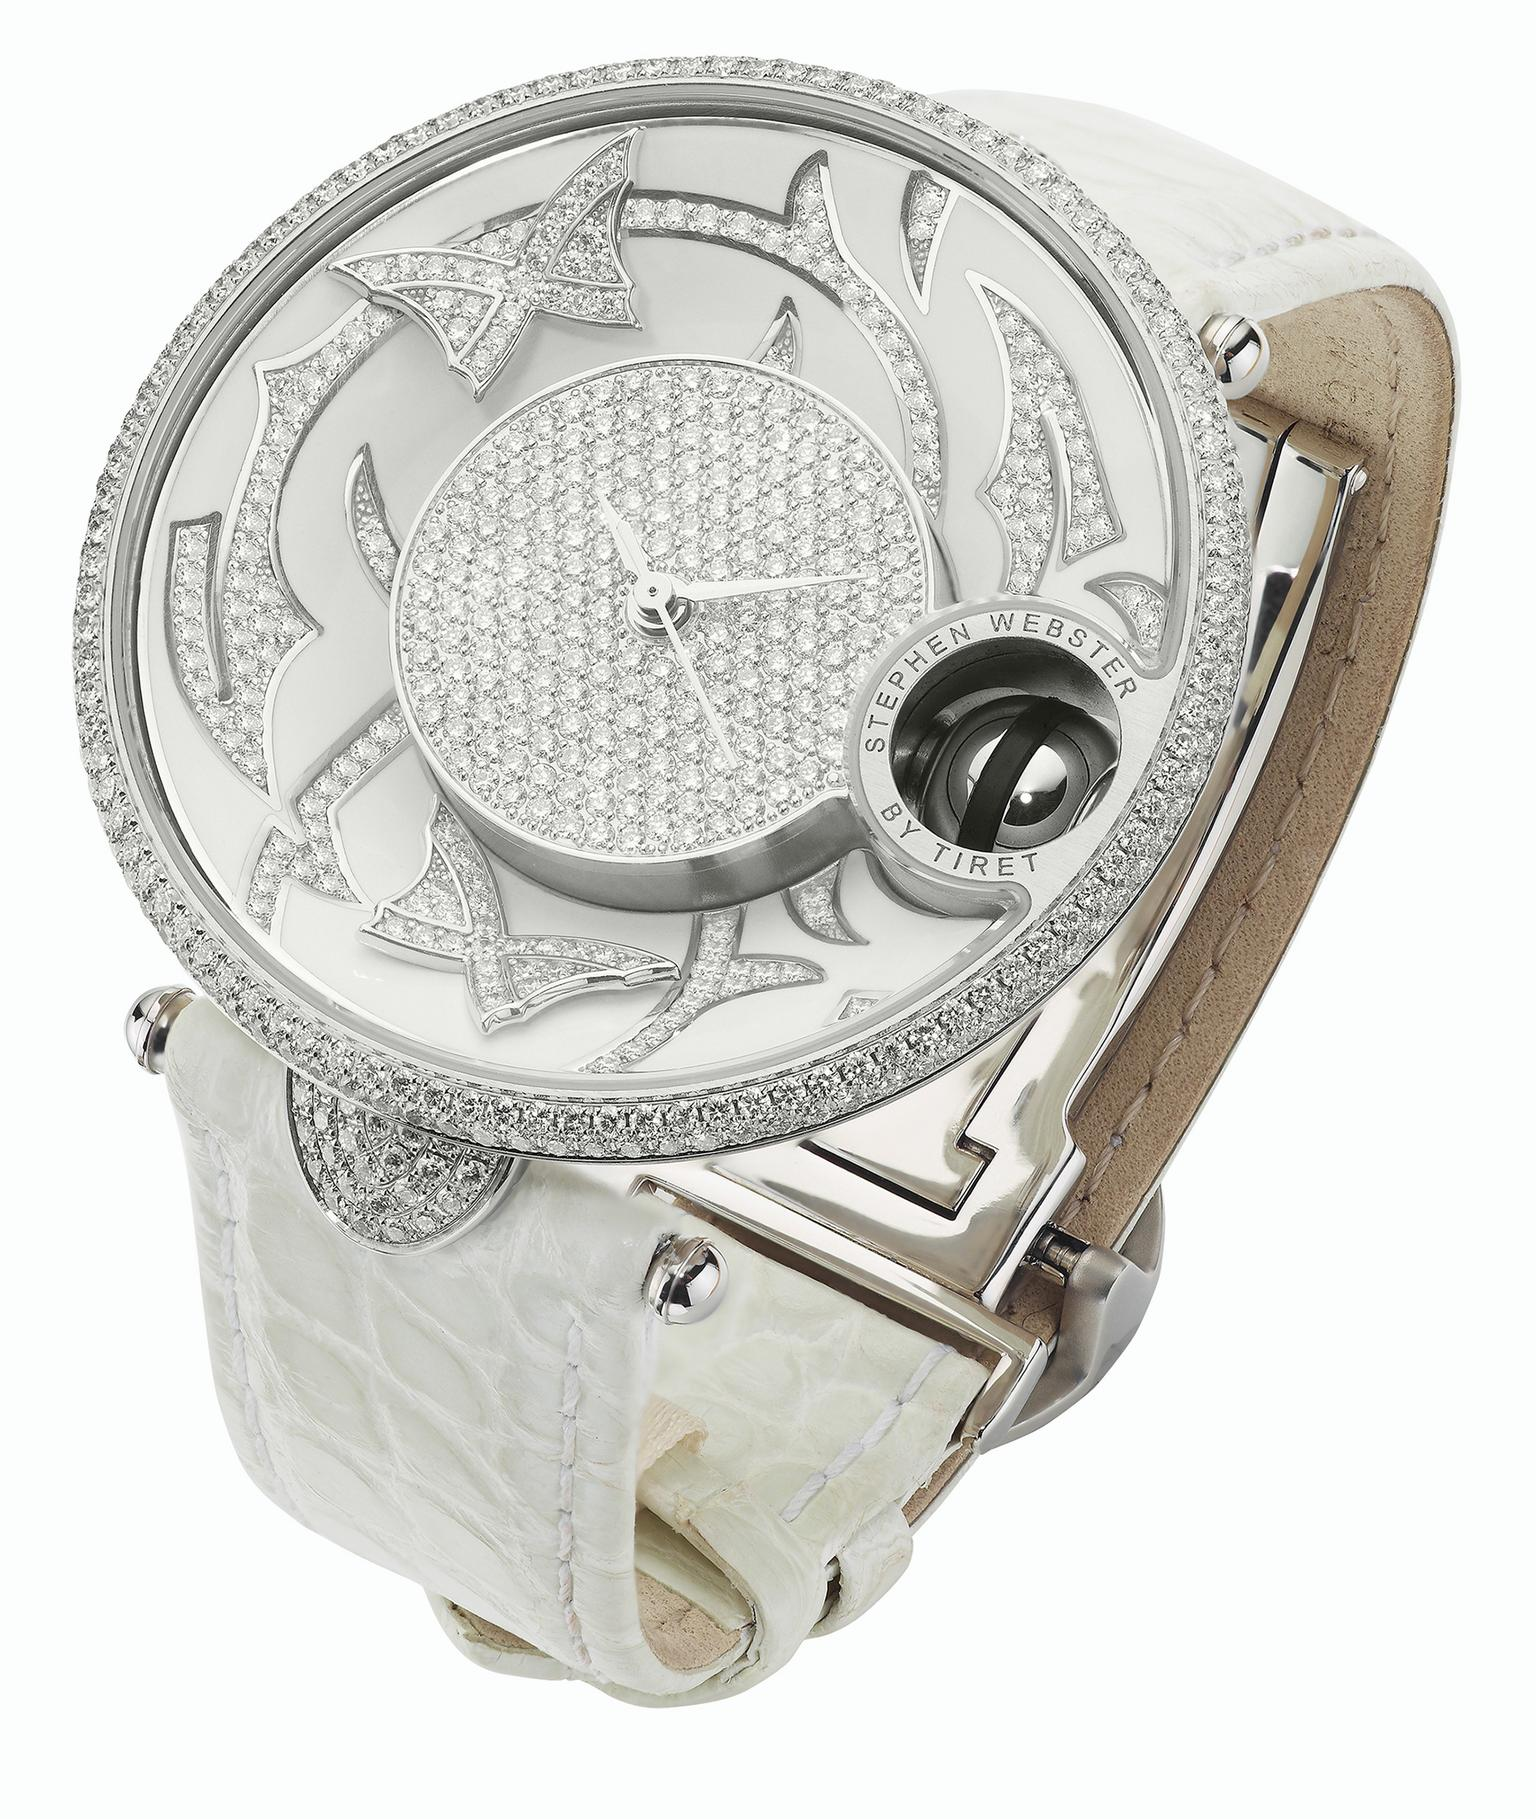 Stephen Webster Fly by Night with Tiret watch with white diamonds_20140110_Zoom